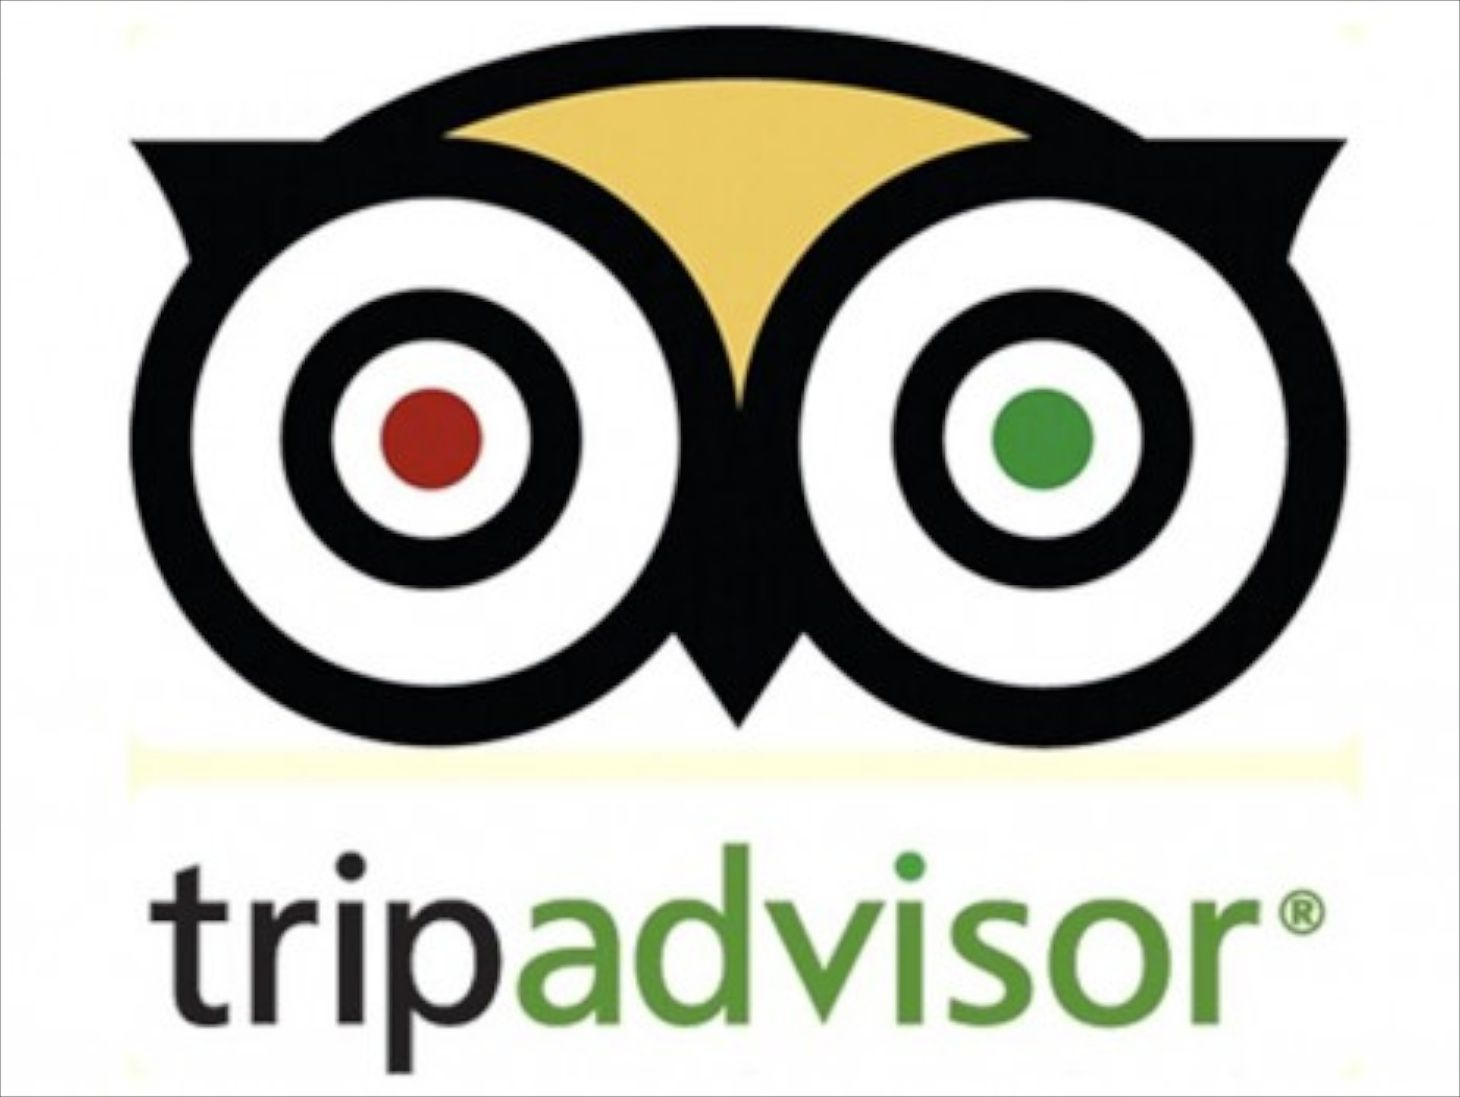 TripAdvisor Logo - Flagler Beaches Ranked #3 on TripAdvisor's List of Affordable US ...